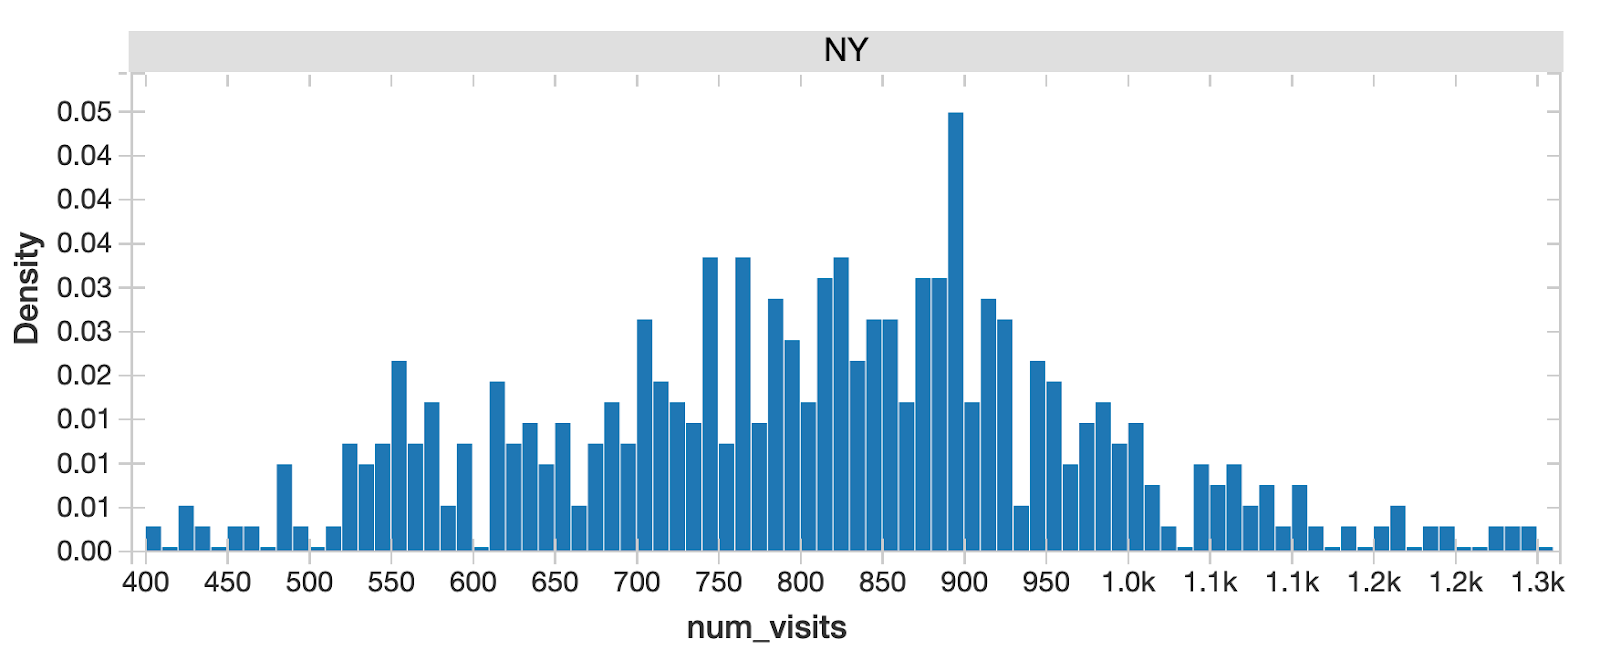 Databricks' marketing mix analytics solution allows the advertiser to drill down into a dataset and isolate and draw conclusions from, for example, foot traffic specific to NYC.